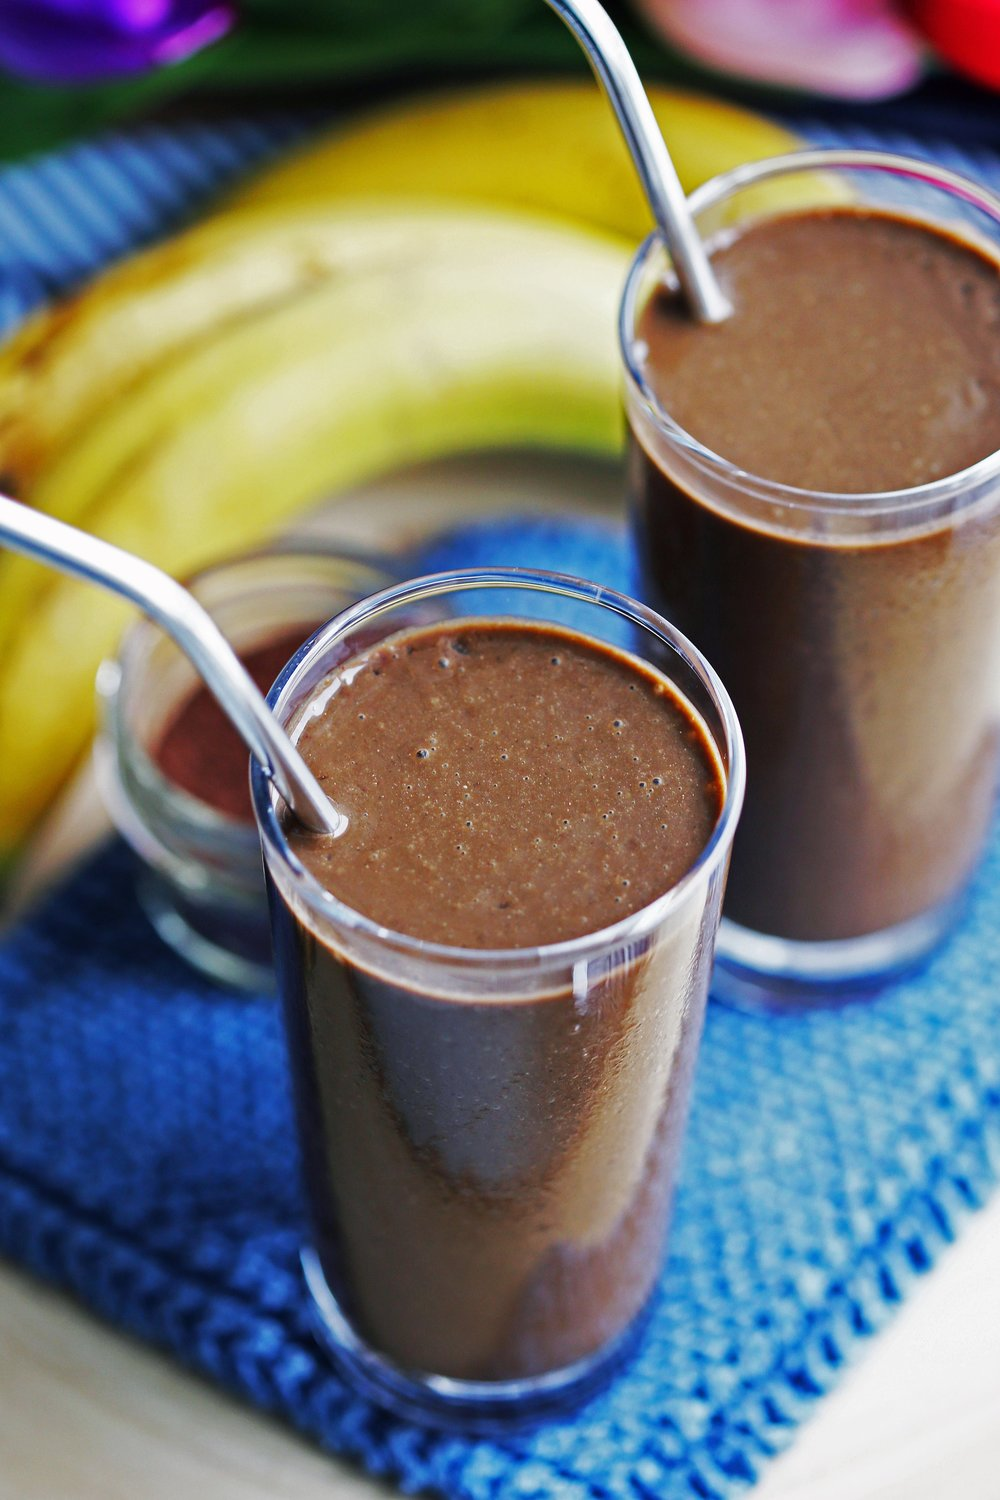 Healthy chocolate banana smoothies in two tall glasses with stainless steel straws.